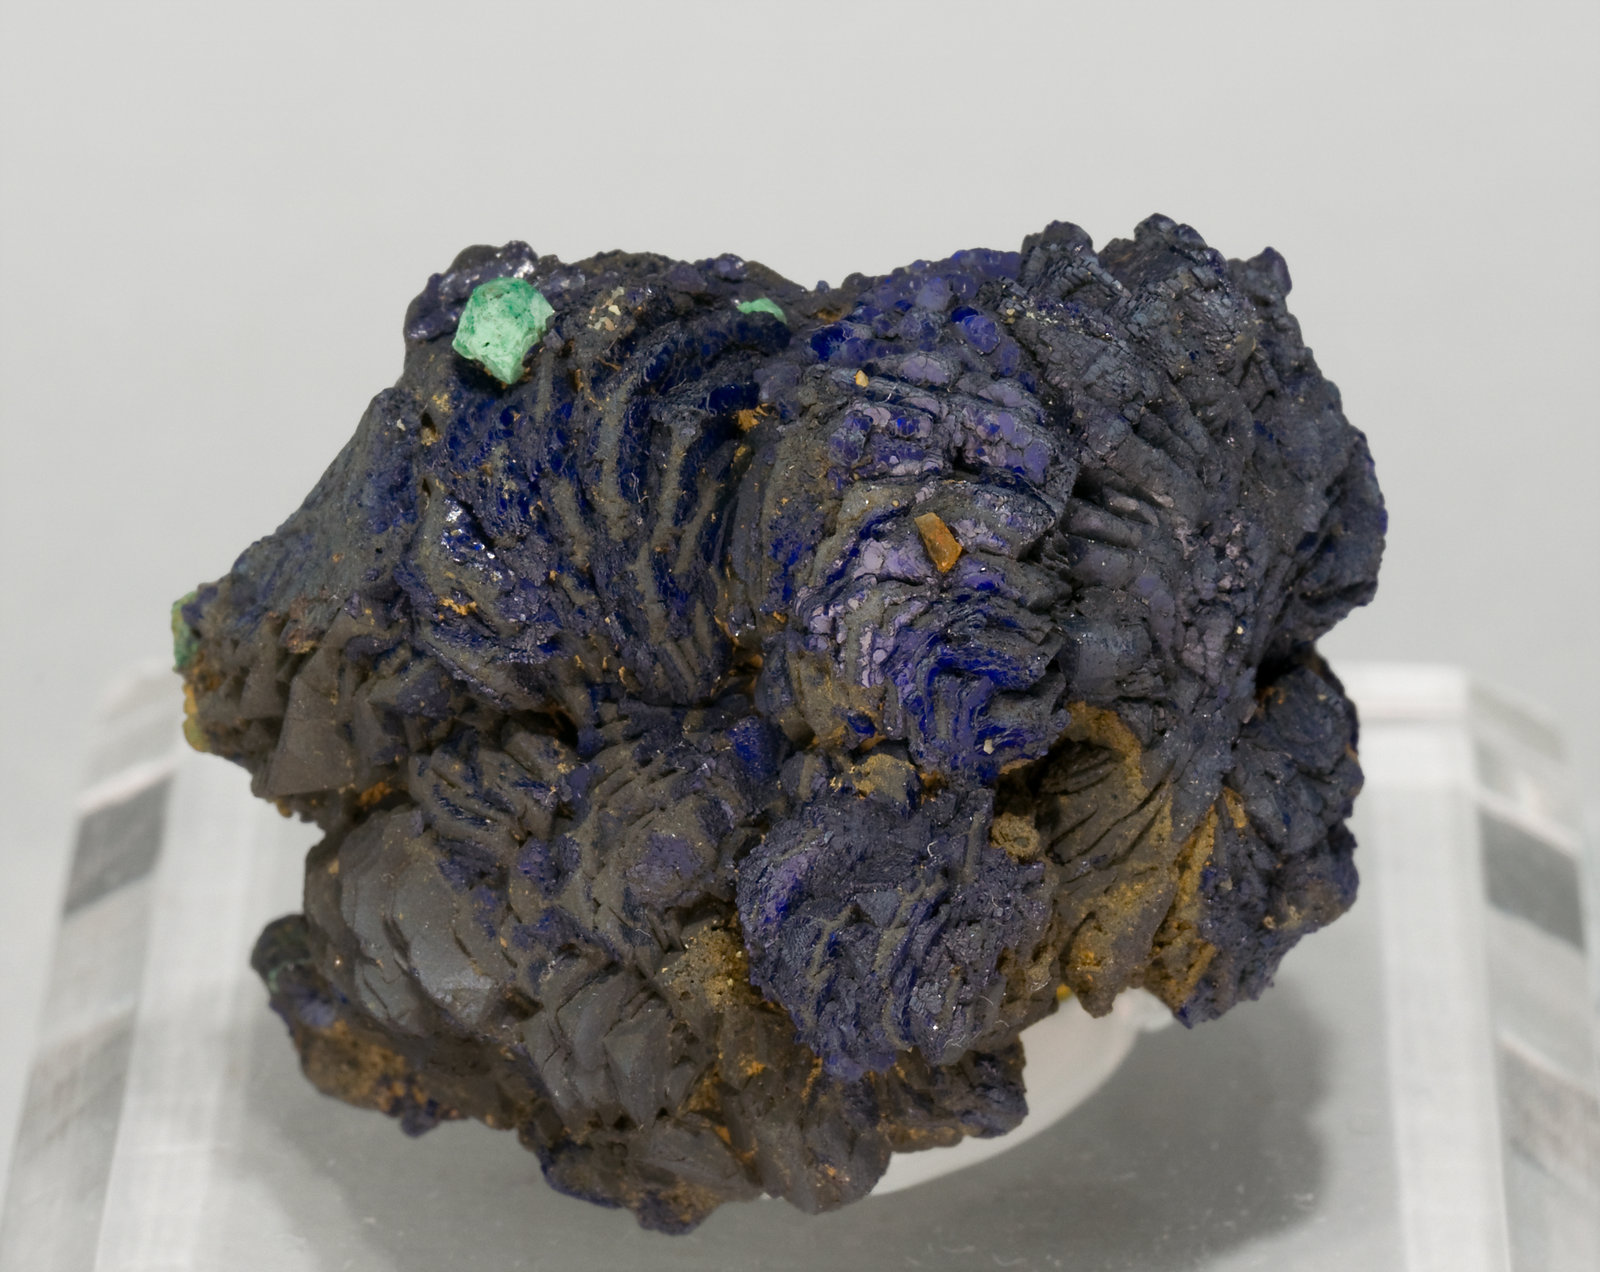 specimens/s_imagesT3/Azurite-TF86T3f.jpg